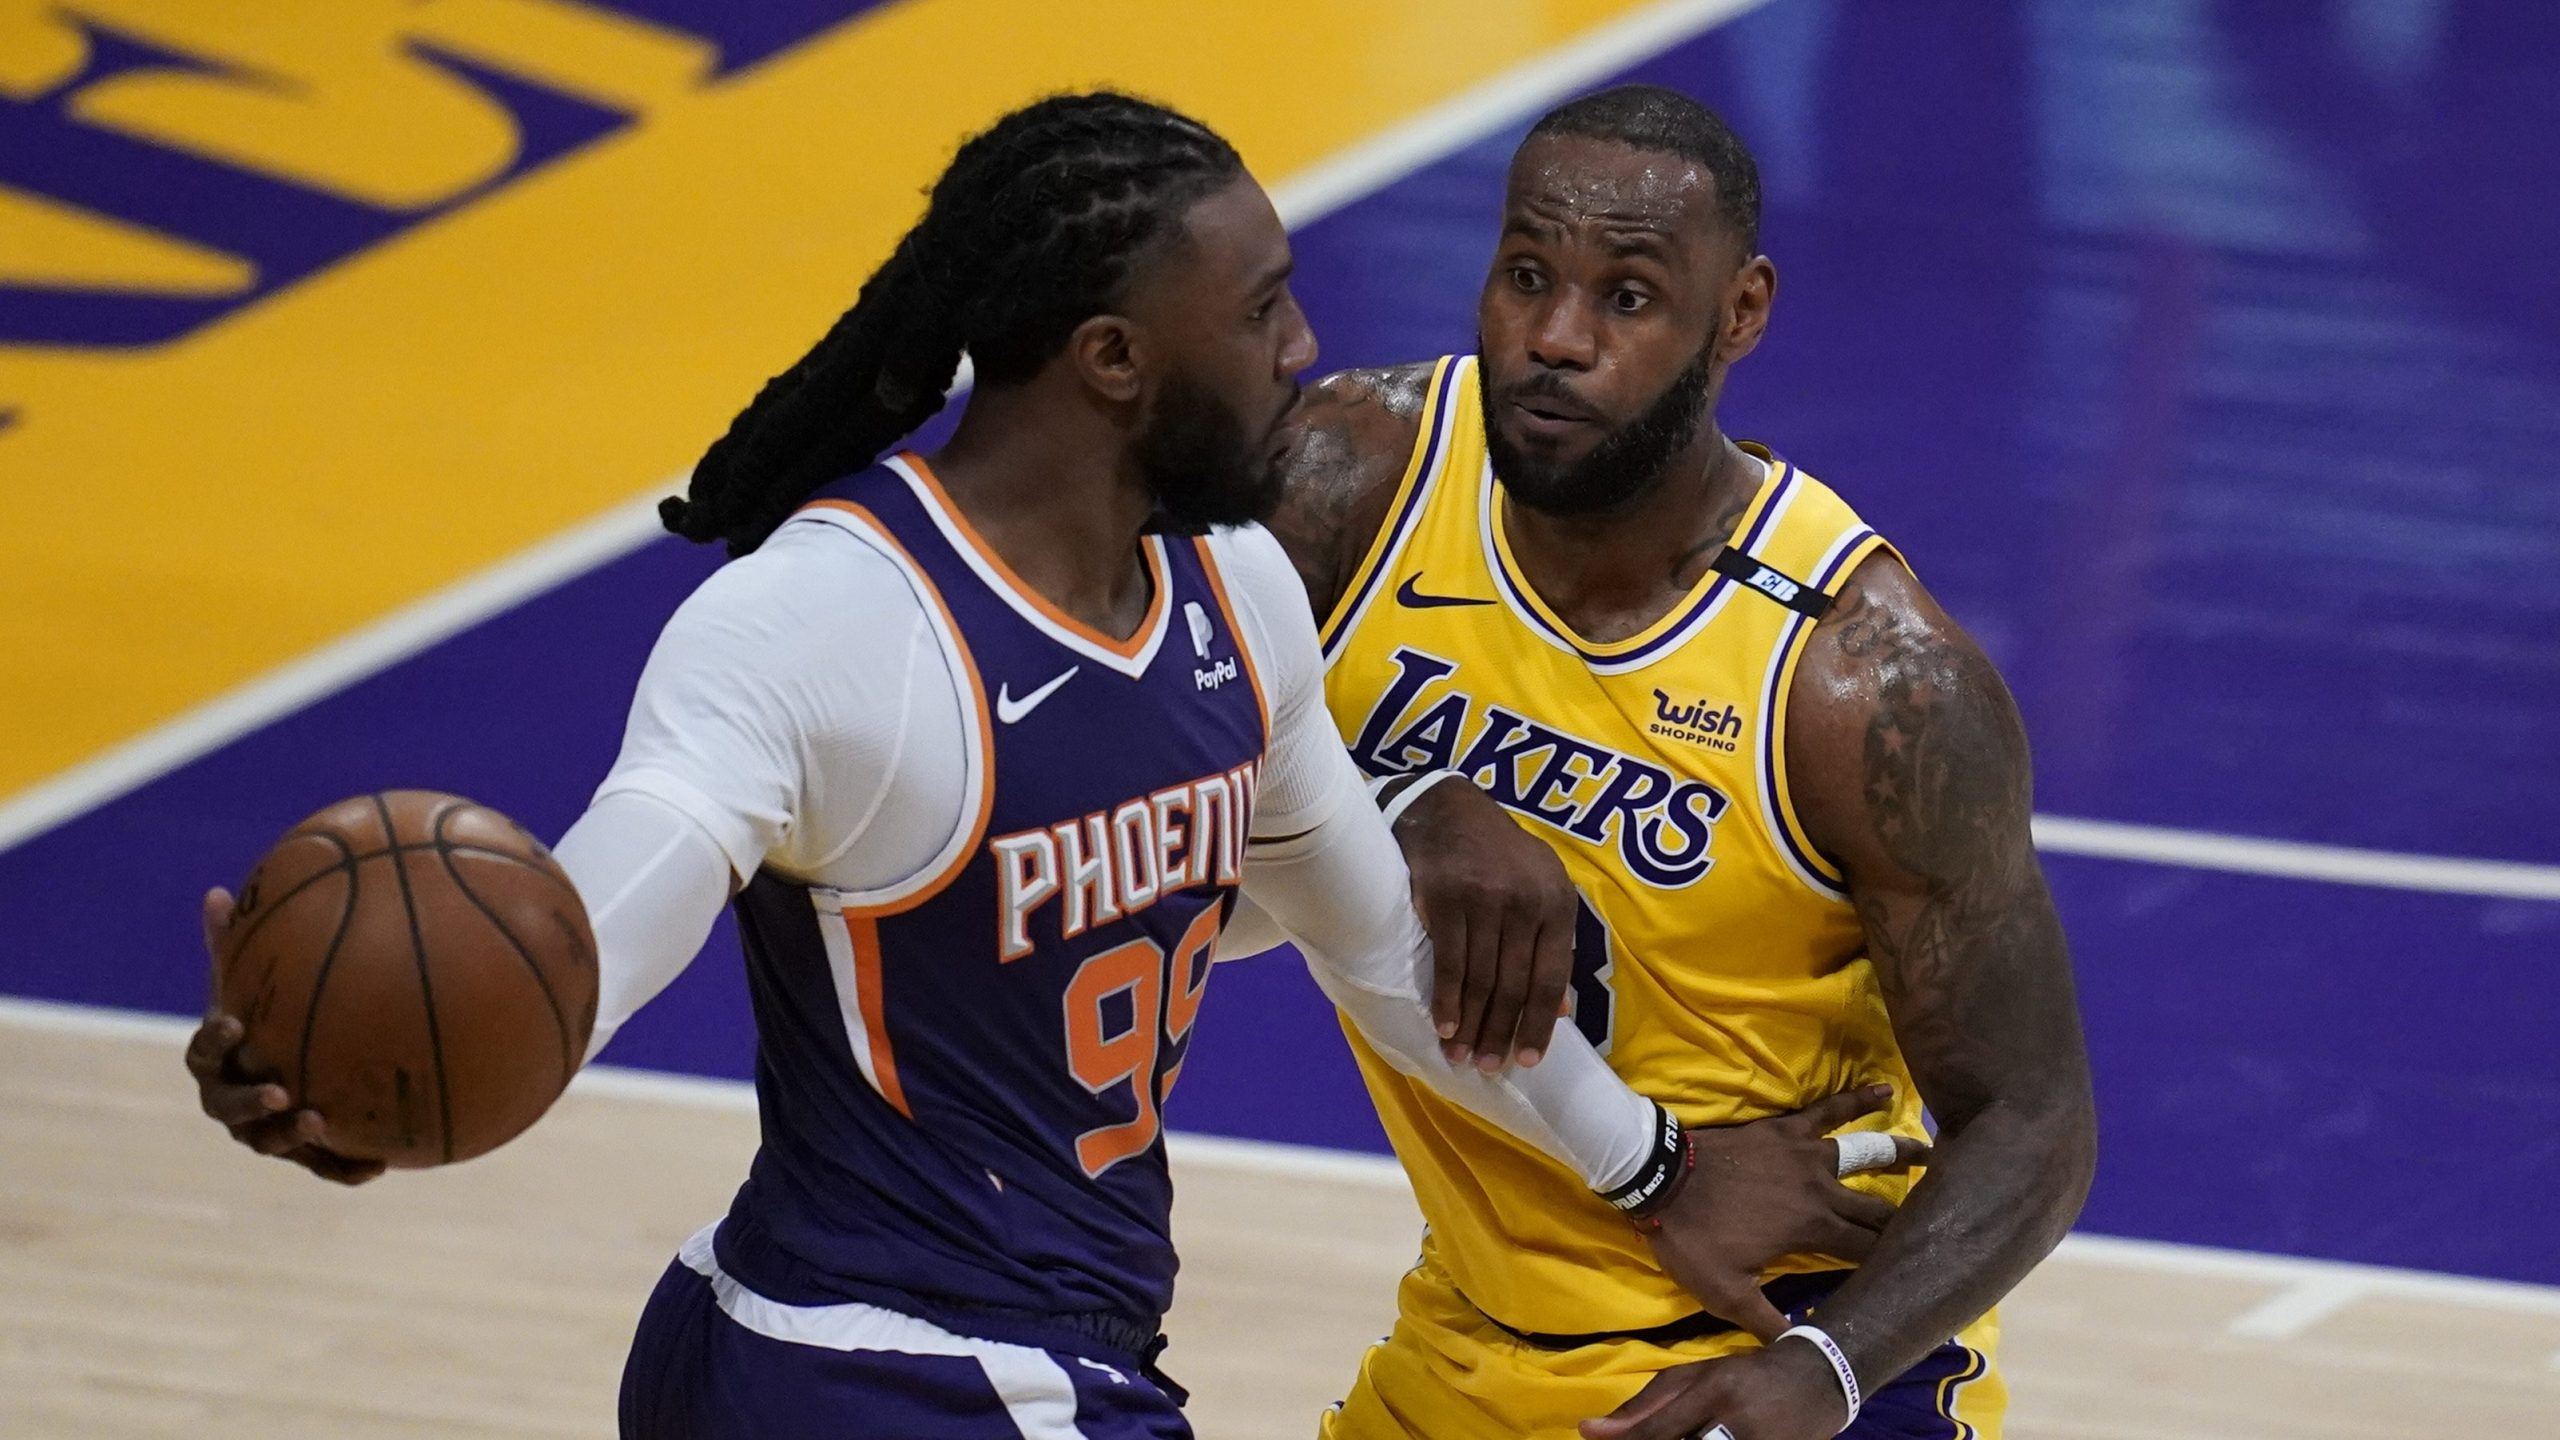 Los Angeles Lakers forward LeBron James (23) defends against Phoenix Suns forward Jae Crowder (99) during the second quarter of Game 6 of an NBA basketball first-round playoff series in Los Angeles on June 3, 2021. (Ashley Landis / Associated Press)